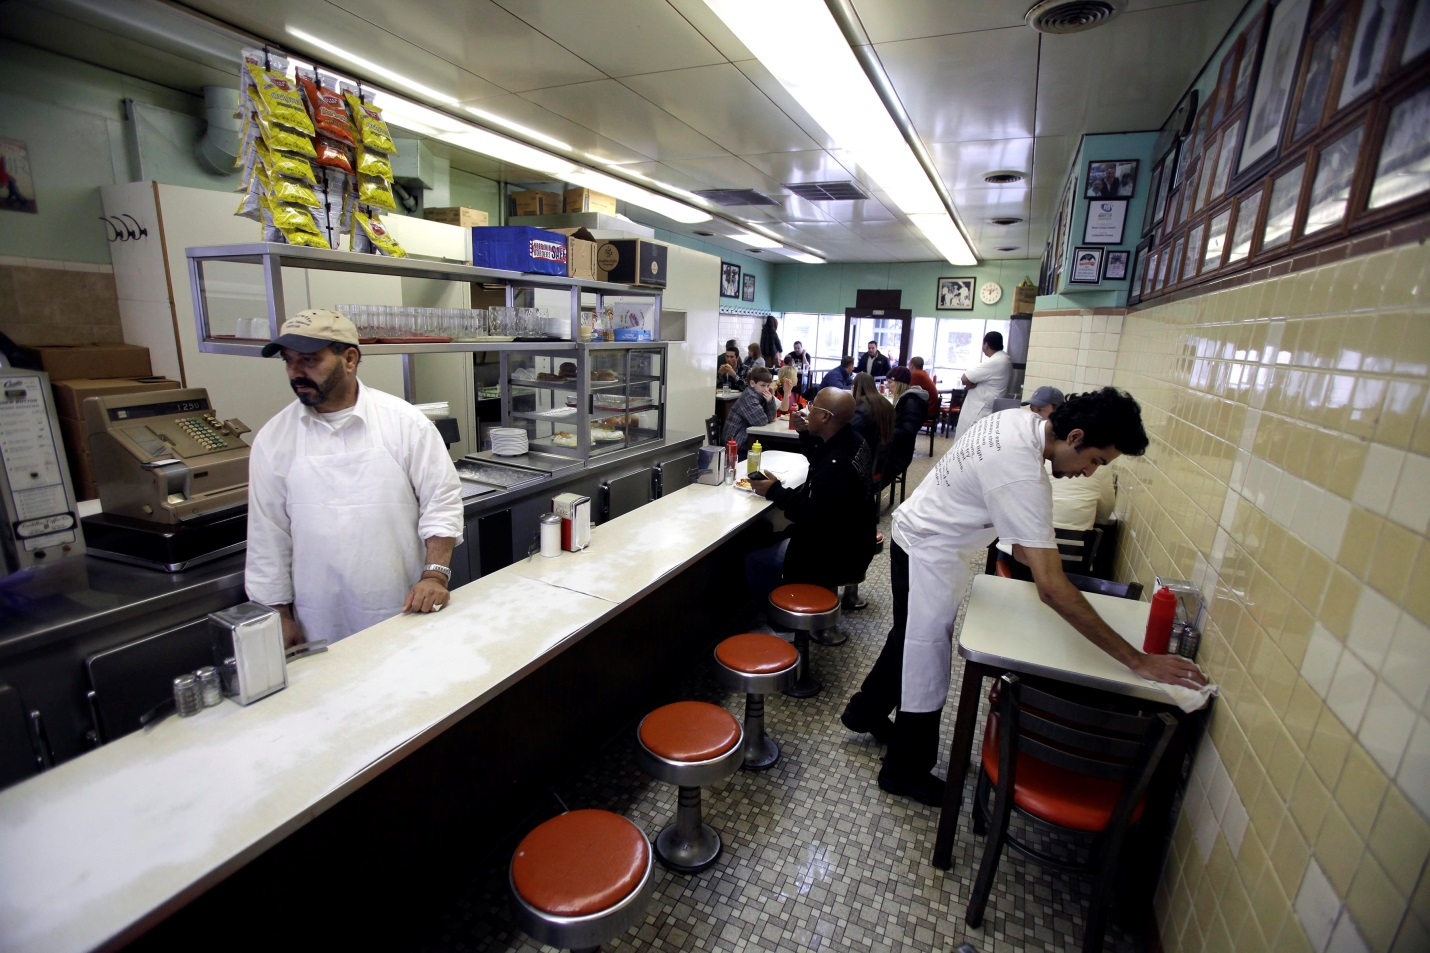 A waiter clears a table at Lafayette Coney Island restaurant in Detroit, Michigan, February 24, 2013. Photo: J.D. Pooley / Getty Images